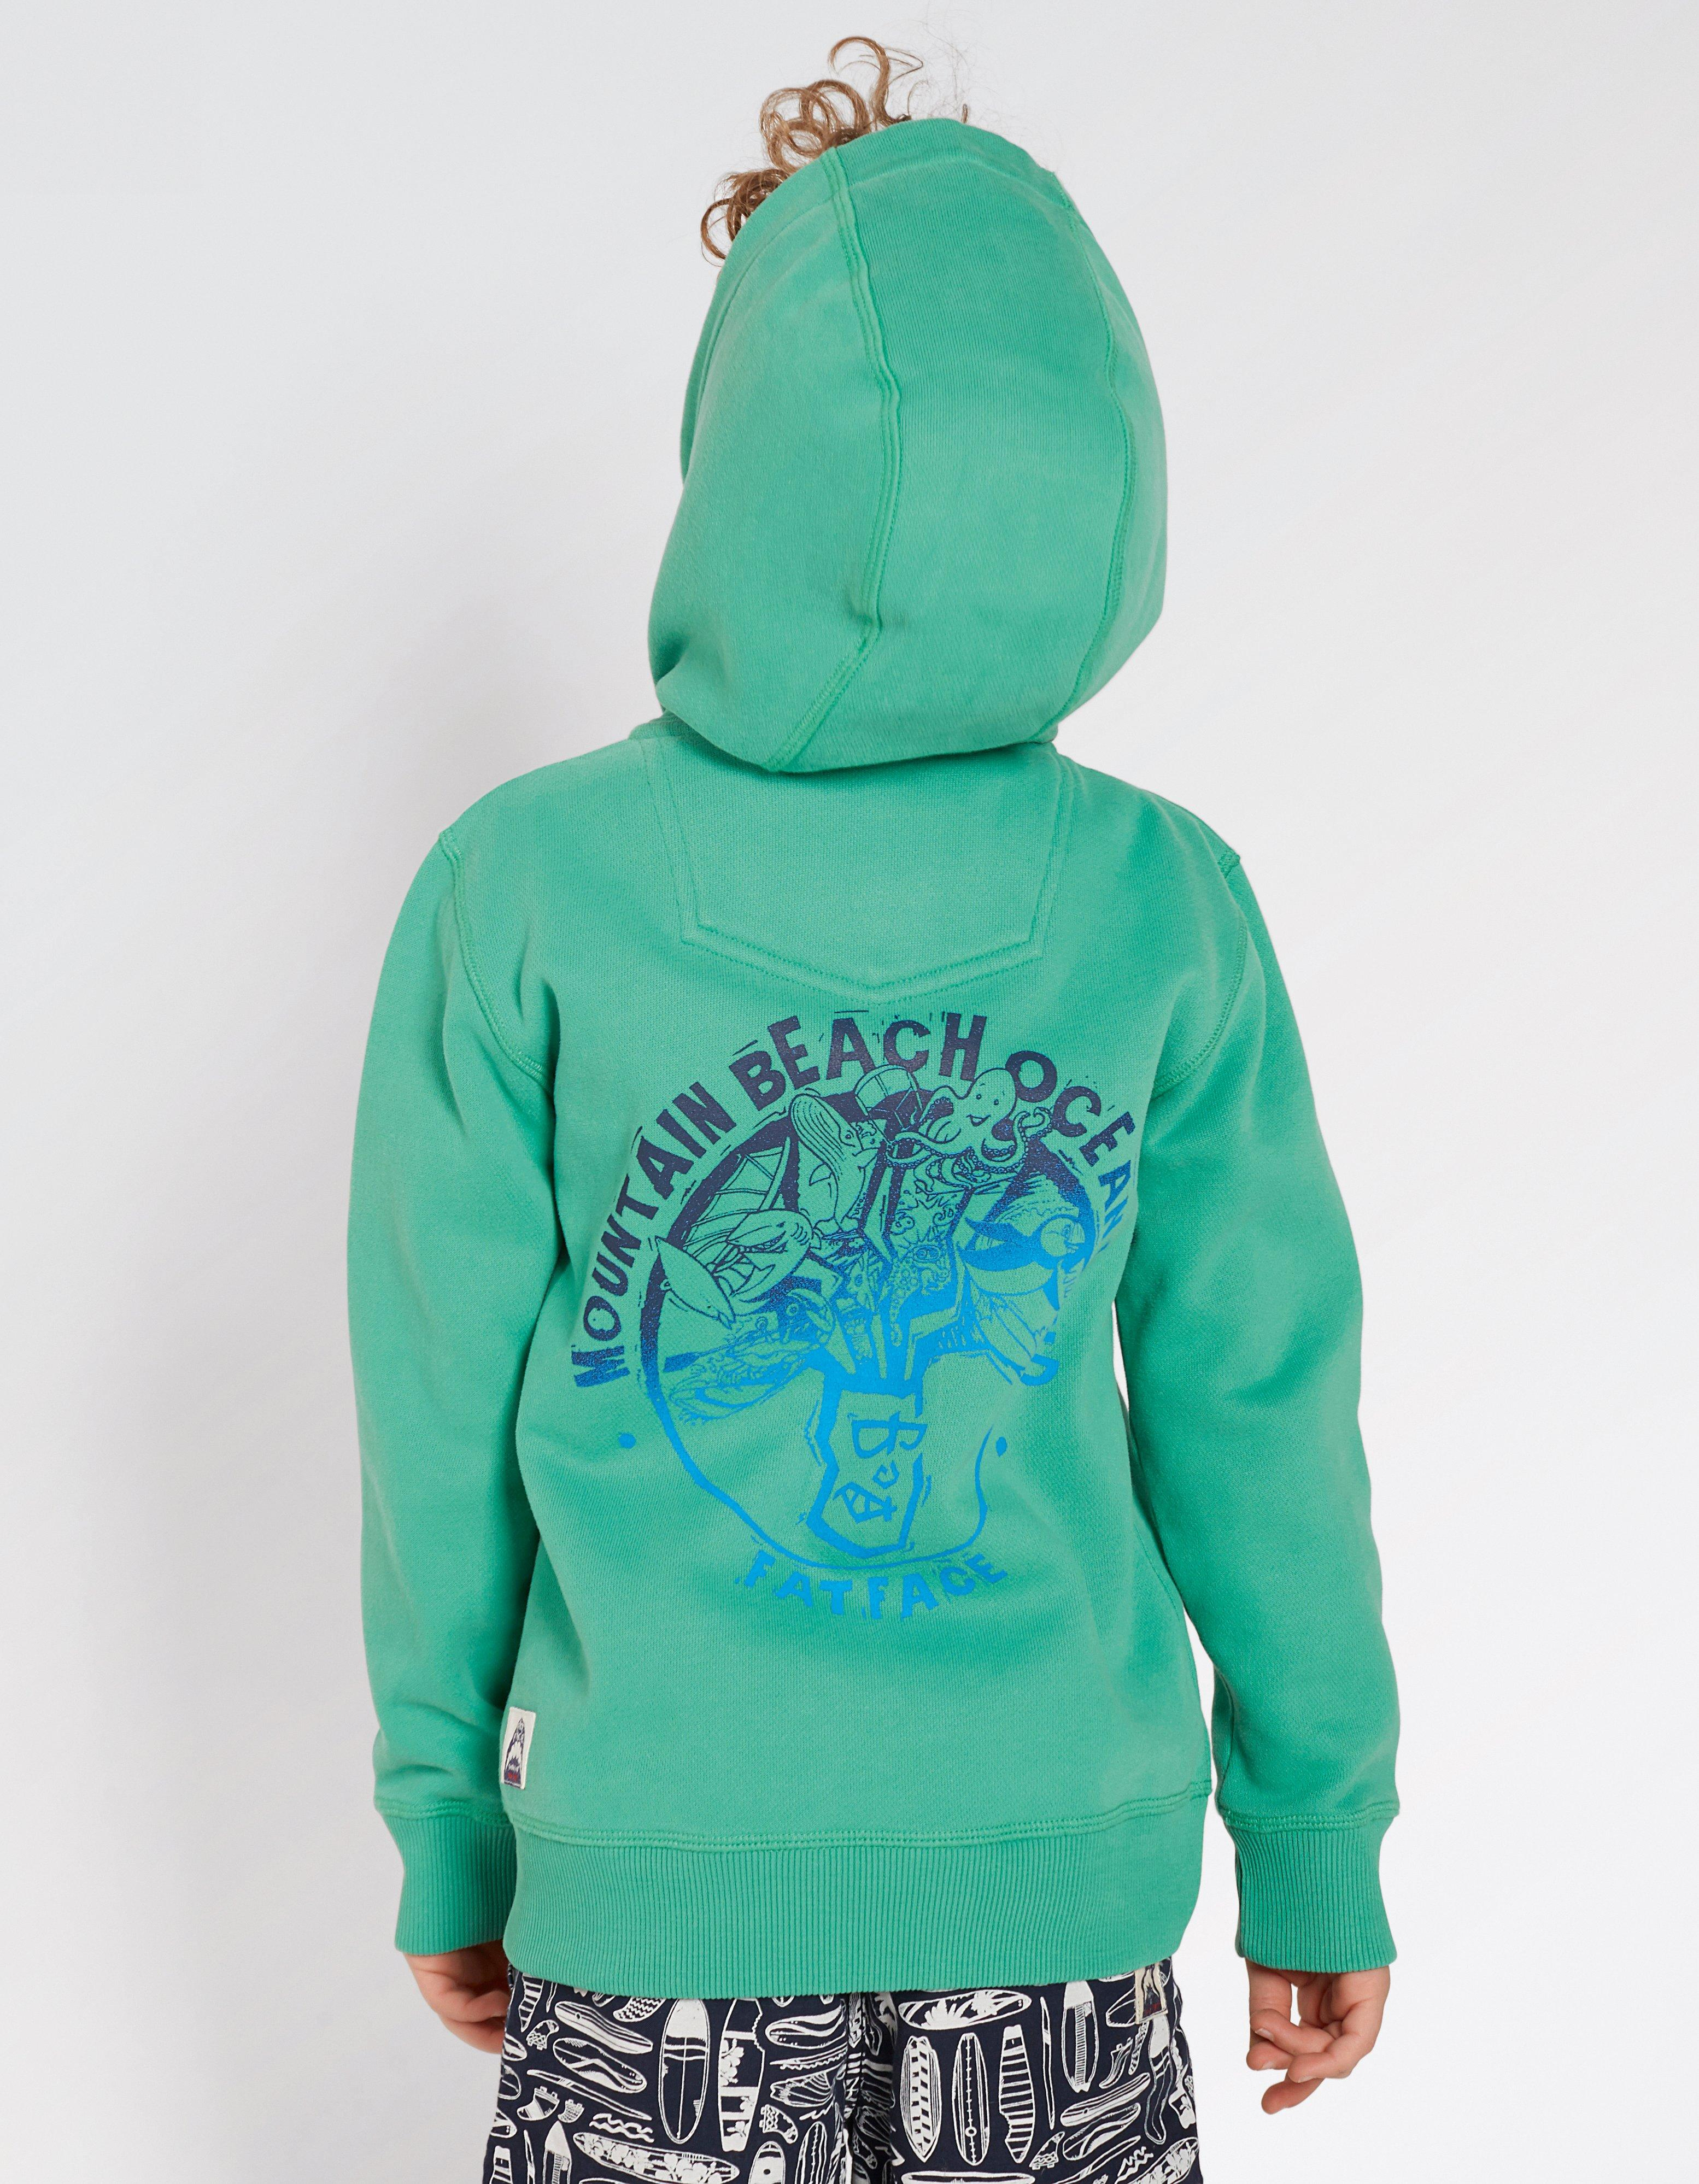 Mountain Beach Zip Thru Hoody